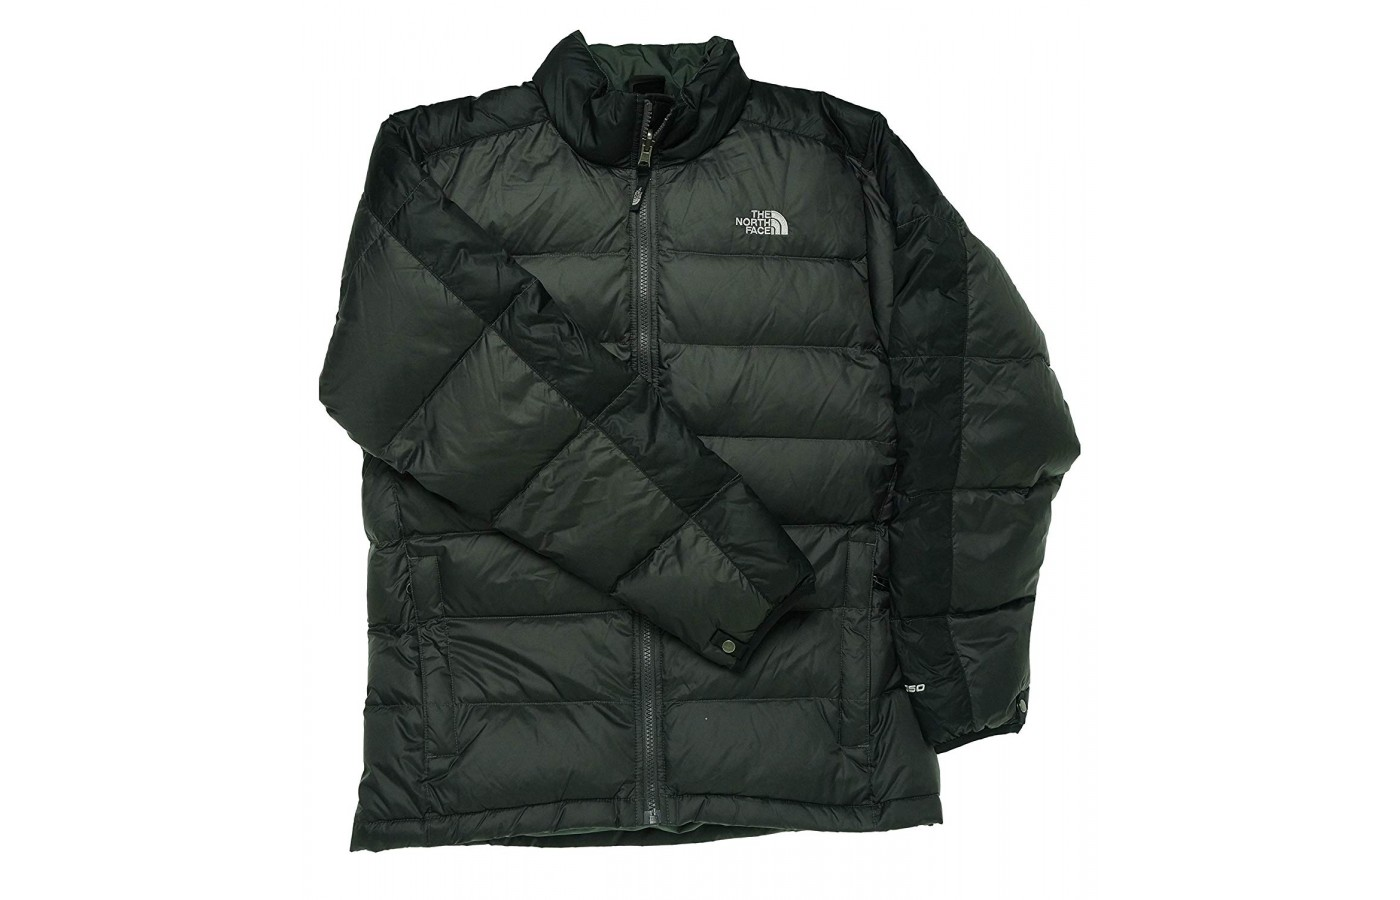 The boys' jacket is a toasty lightweight down jacket.